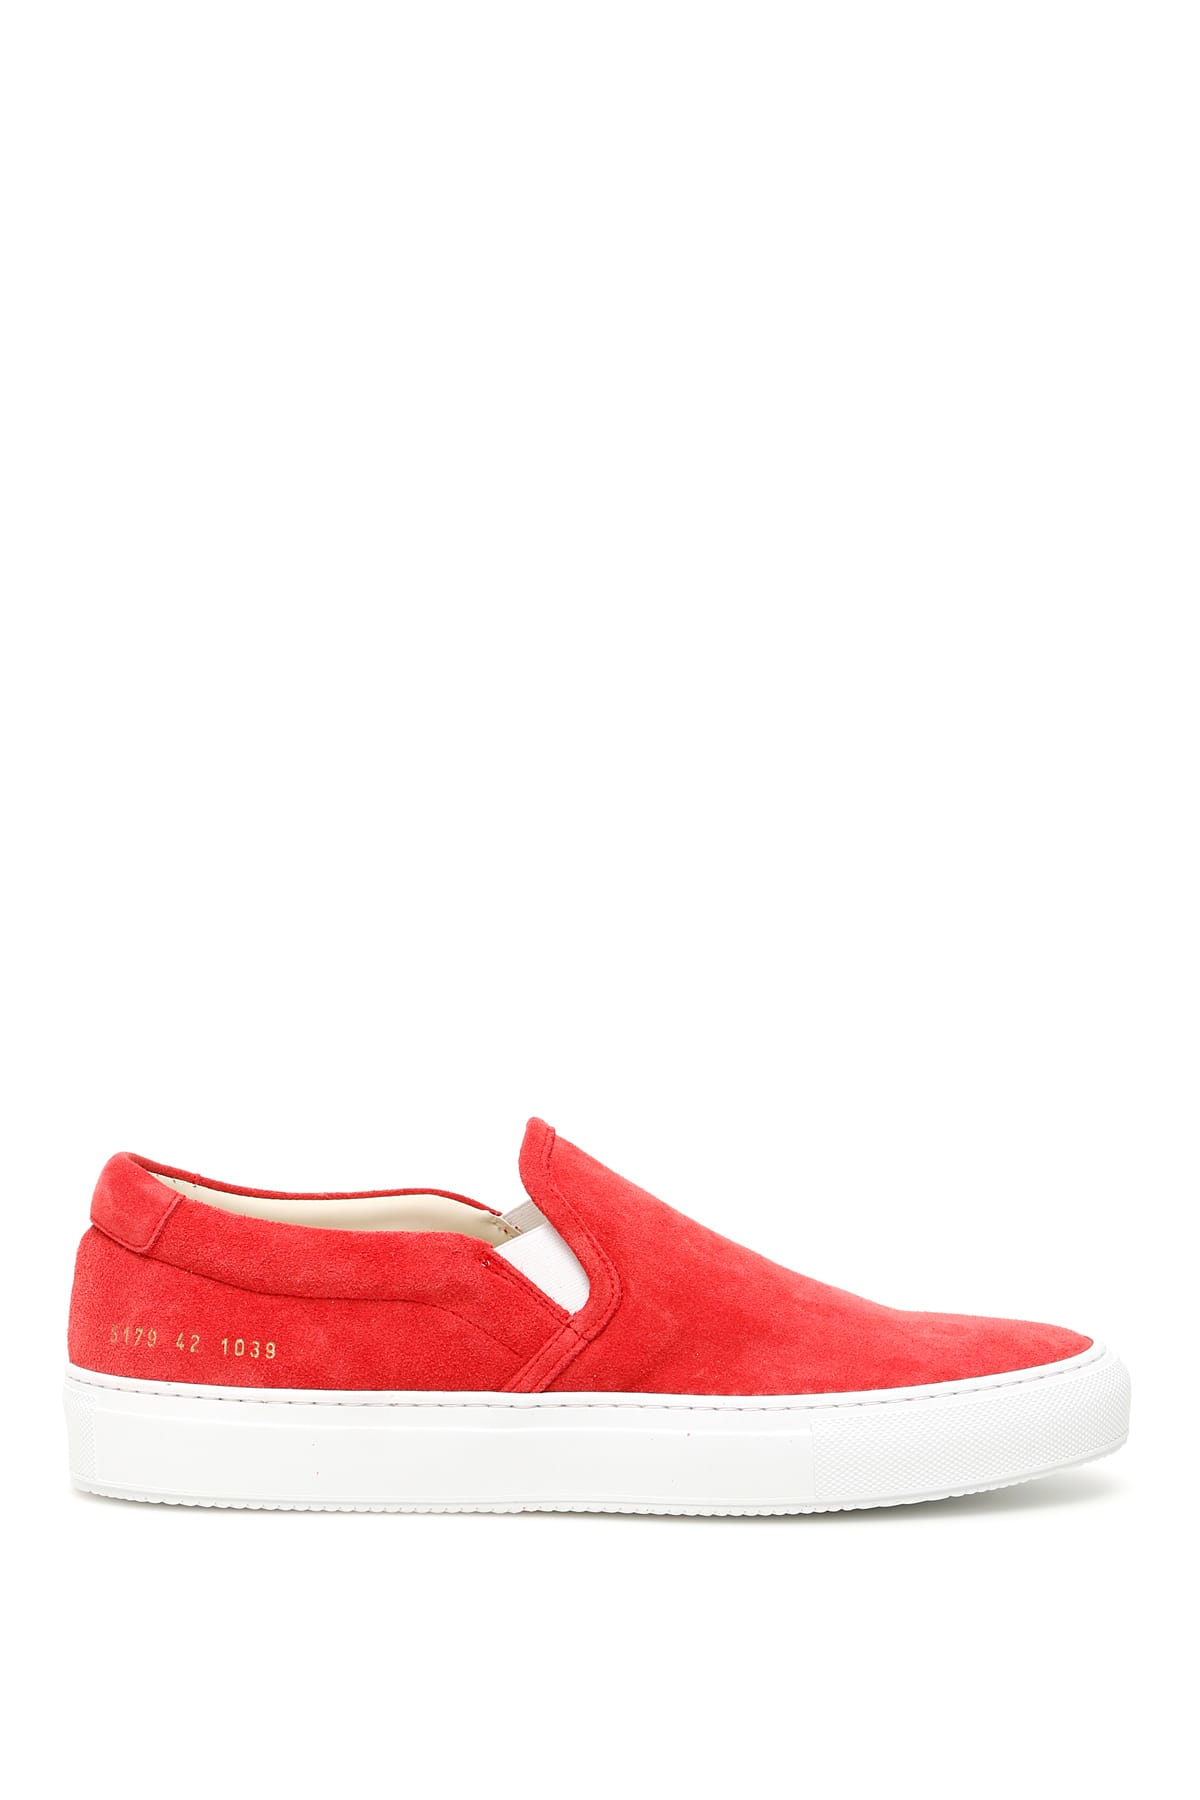 Common Projects Suede Slip-ons